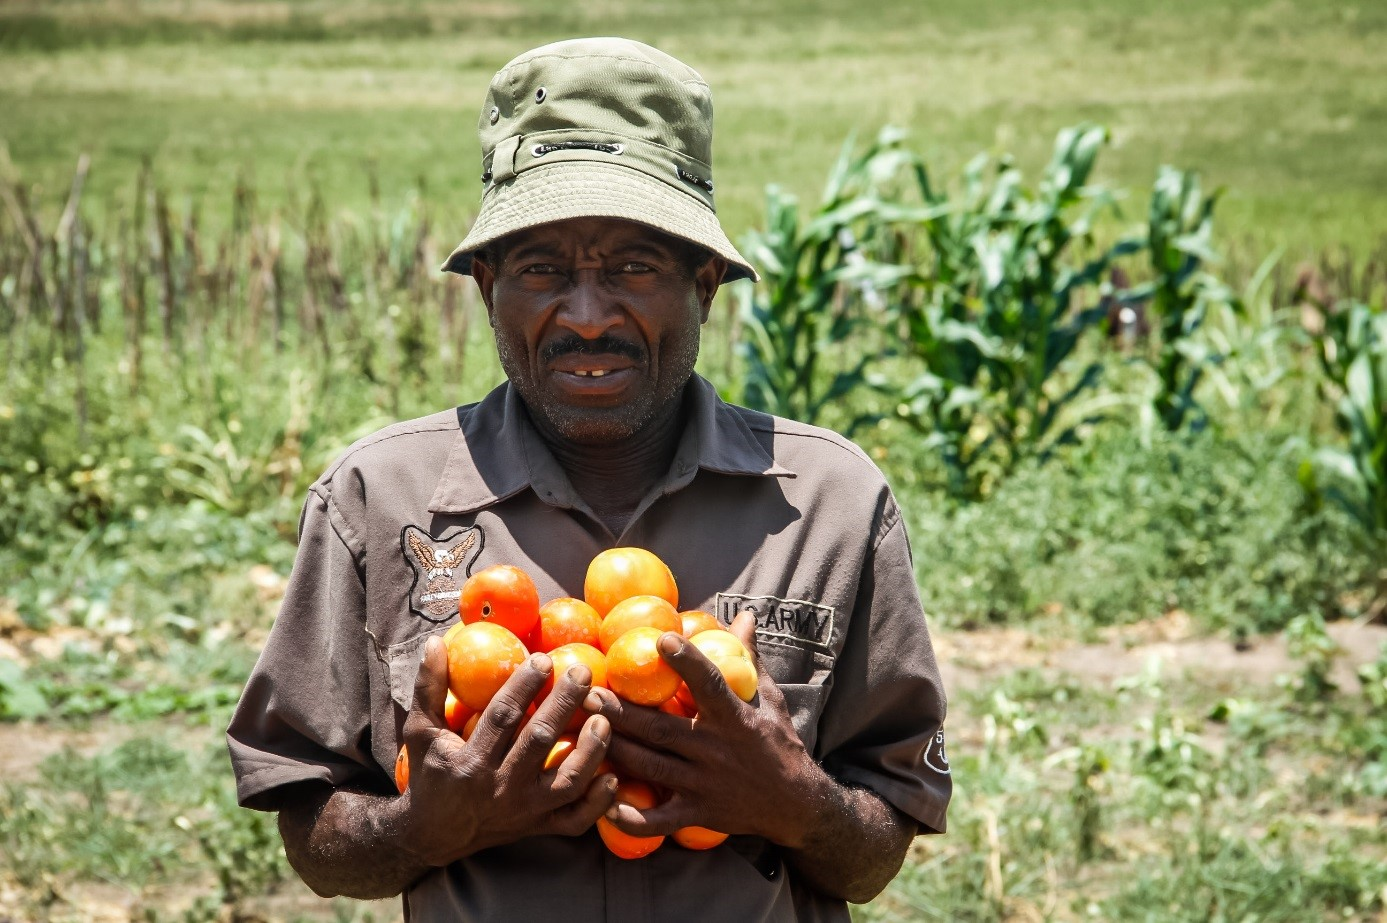 Christian Aid Scotland empowering farmers in Zambia  with Making Agriculture a Business